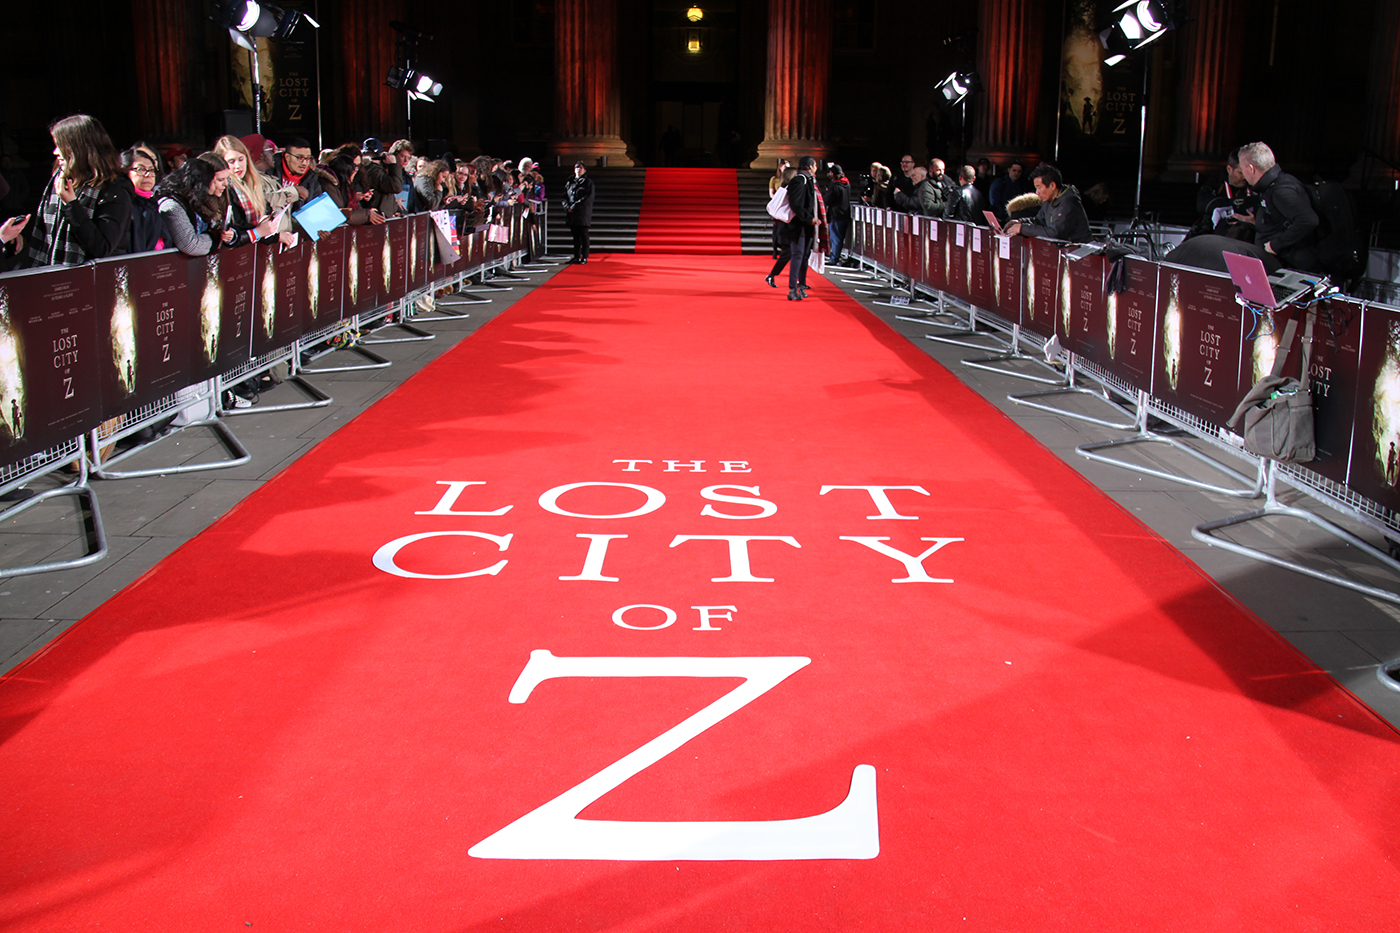 Red carpet at the premiere for The Lost City of Z at the British Museum, February 2017.